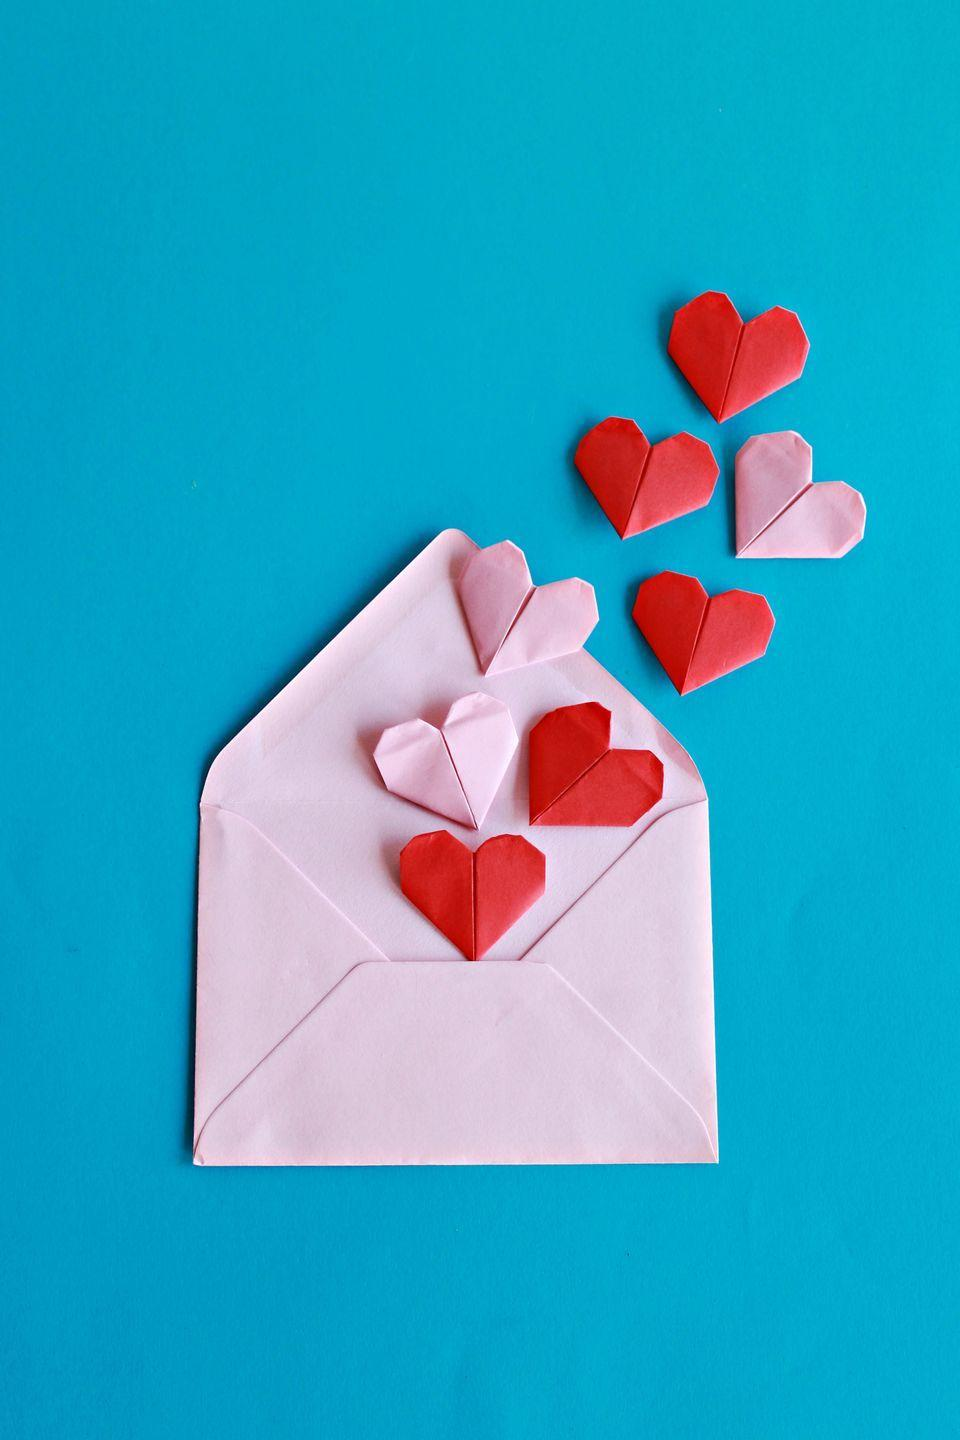 <p>Or, for more immediate satisfaction, make someone's day by surprising them with a piece of snail mail. </p>